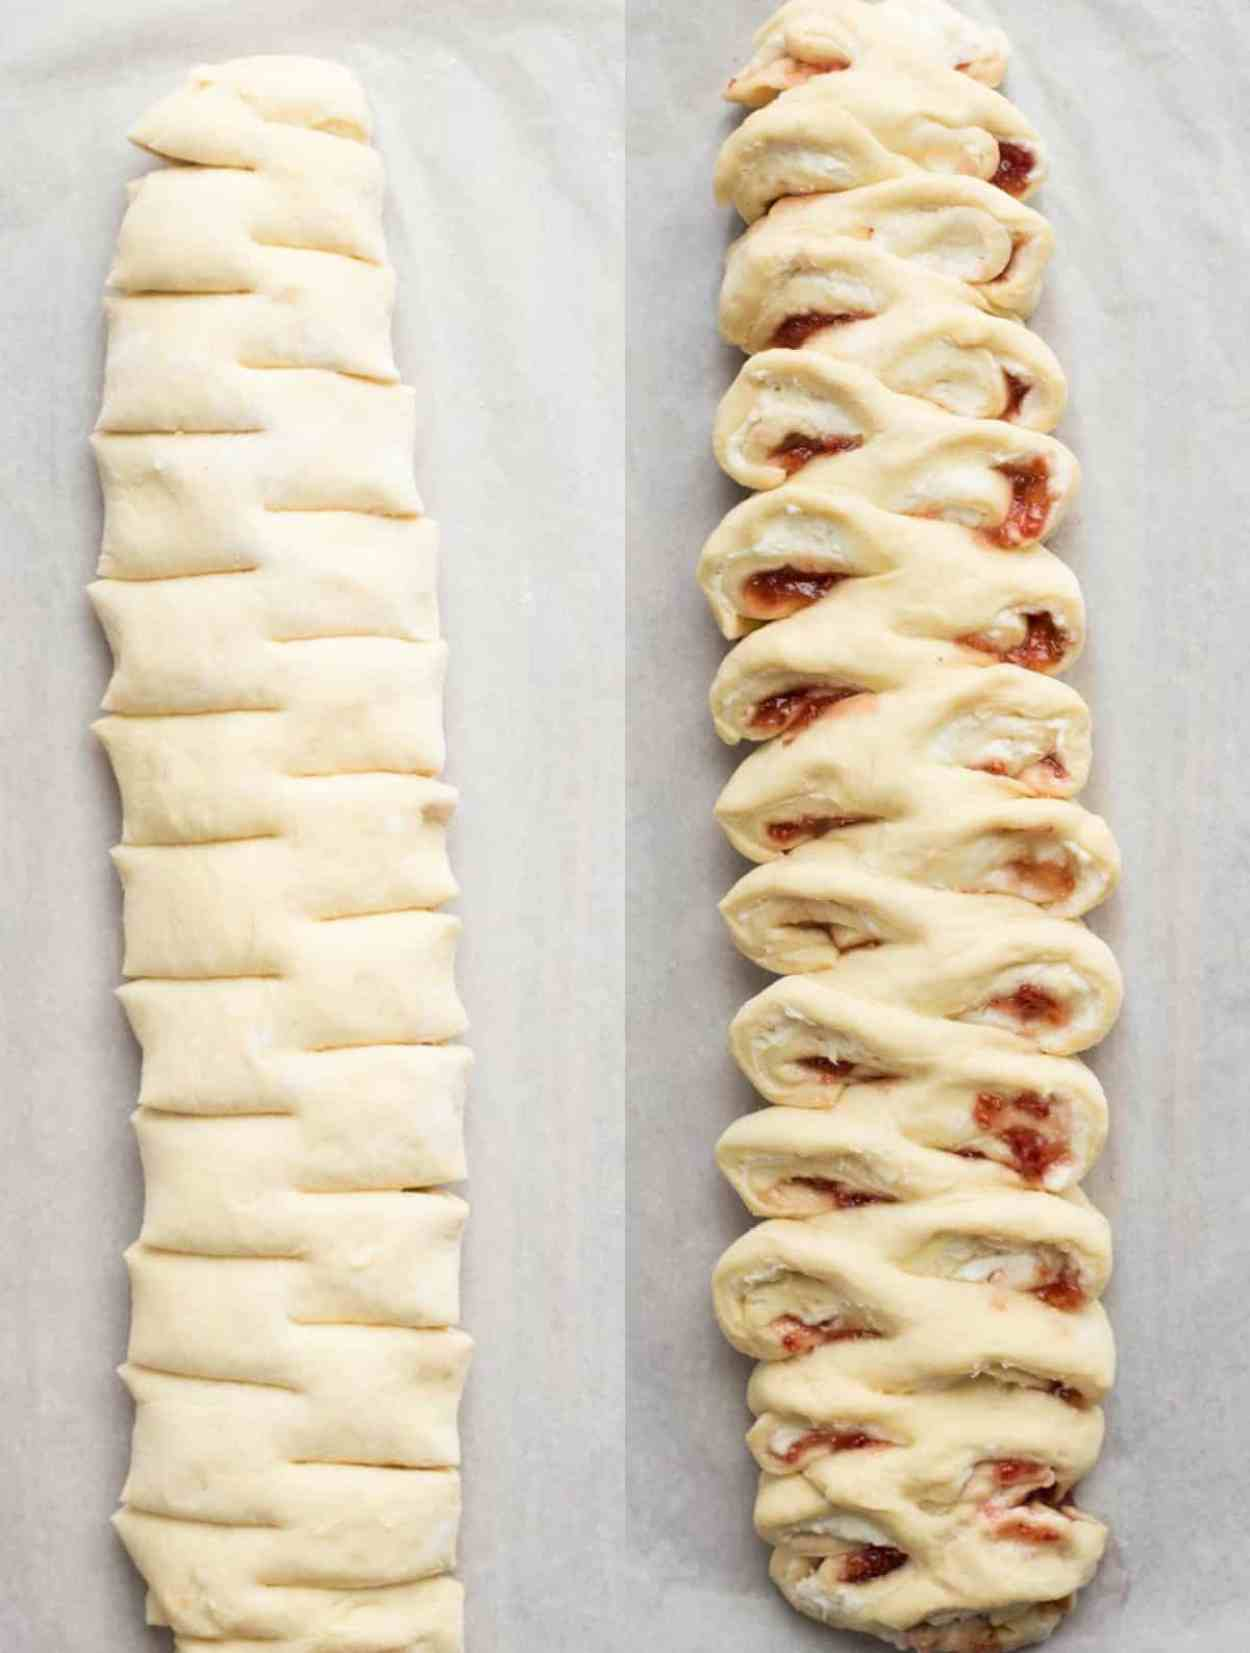 How to form this sweet bread recipe, cutting and arranging the bread with jam and cream cheese.